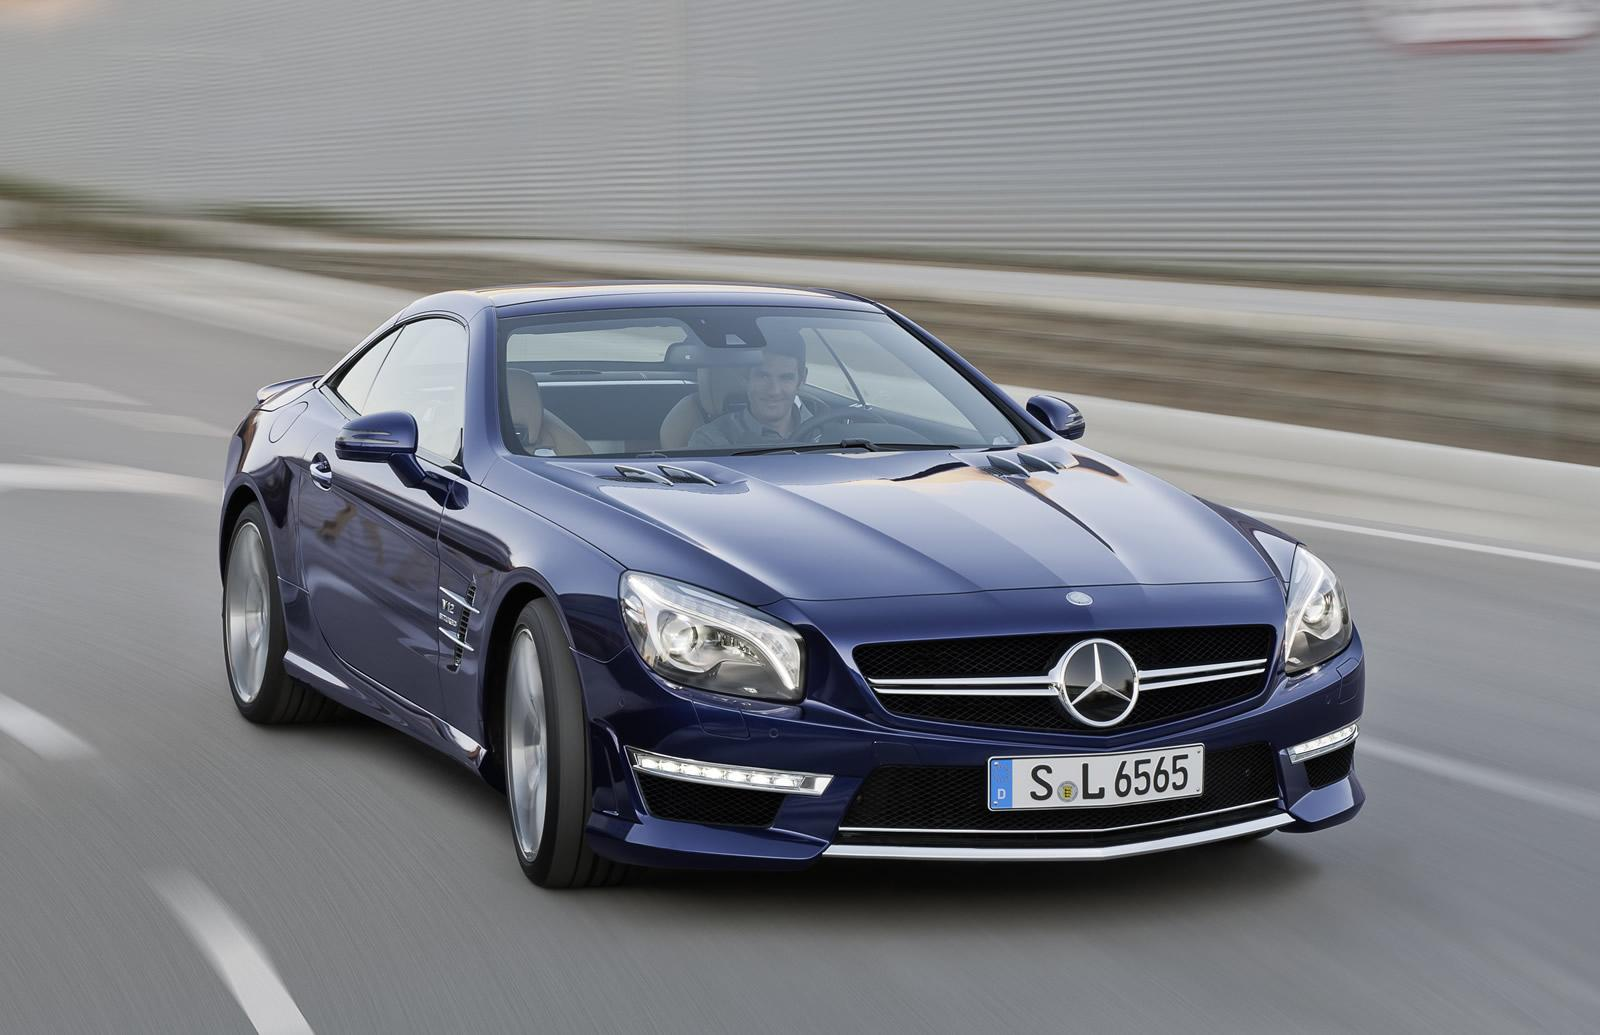 2013 Mercedes SL 65 AMG Revealed: V12 Biturbo - autoevolution